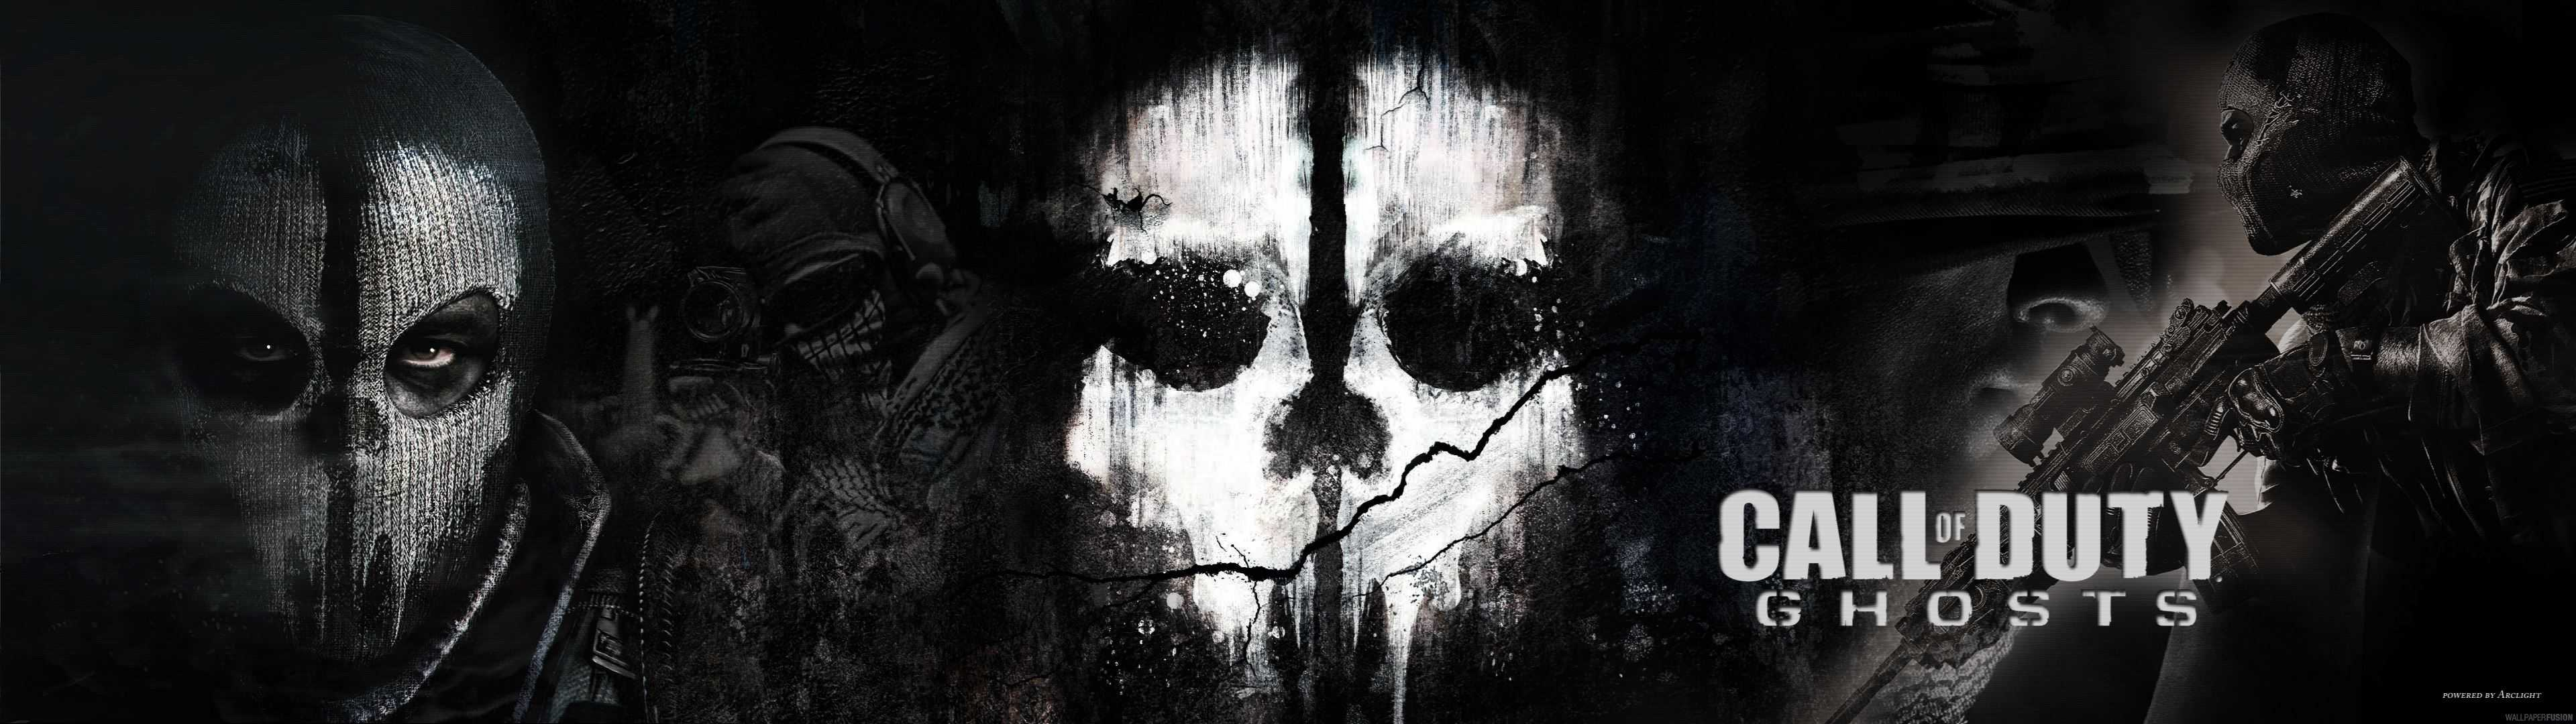 Call Of Duty Ghosts Dual Monitor Wallpaper Pixelz Cc